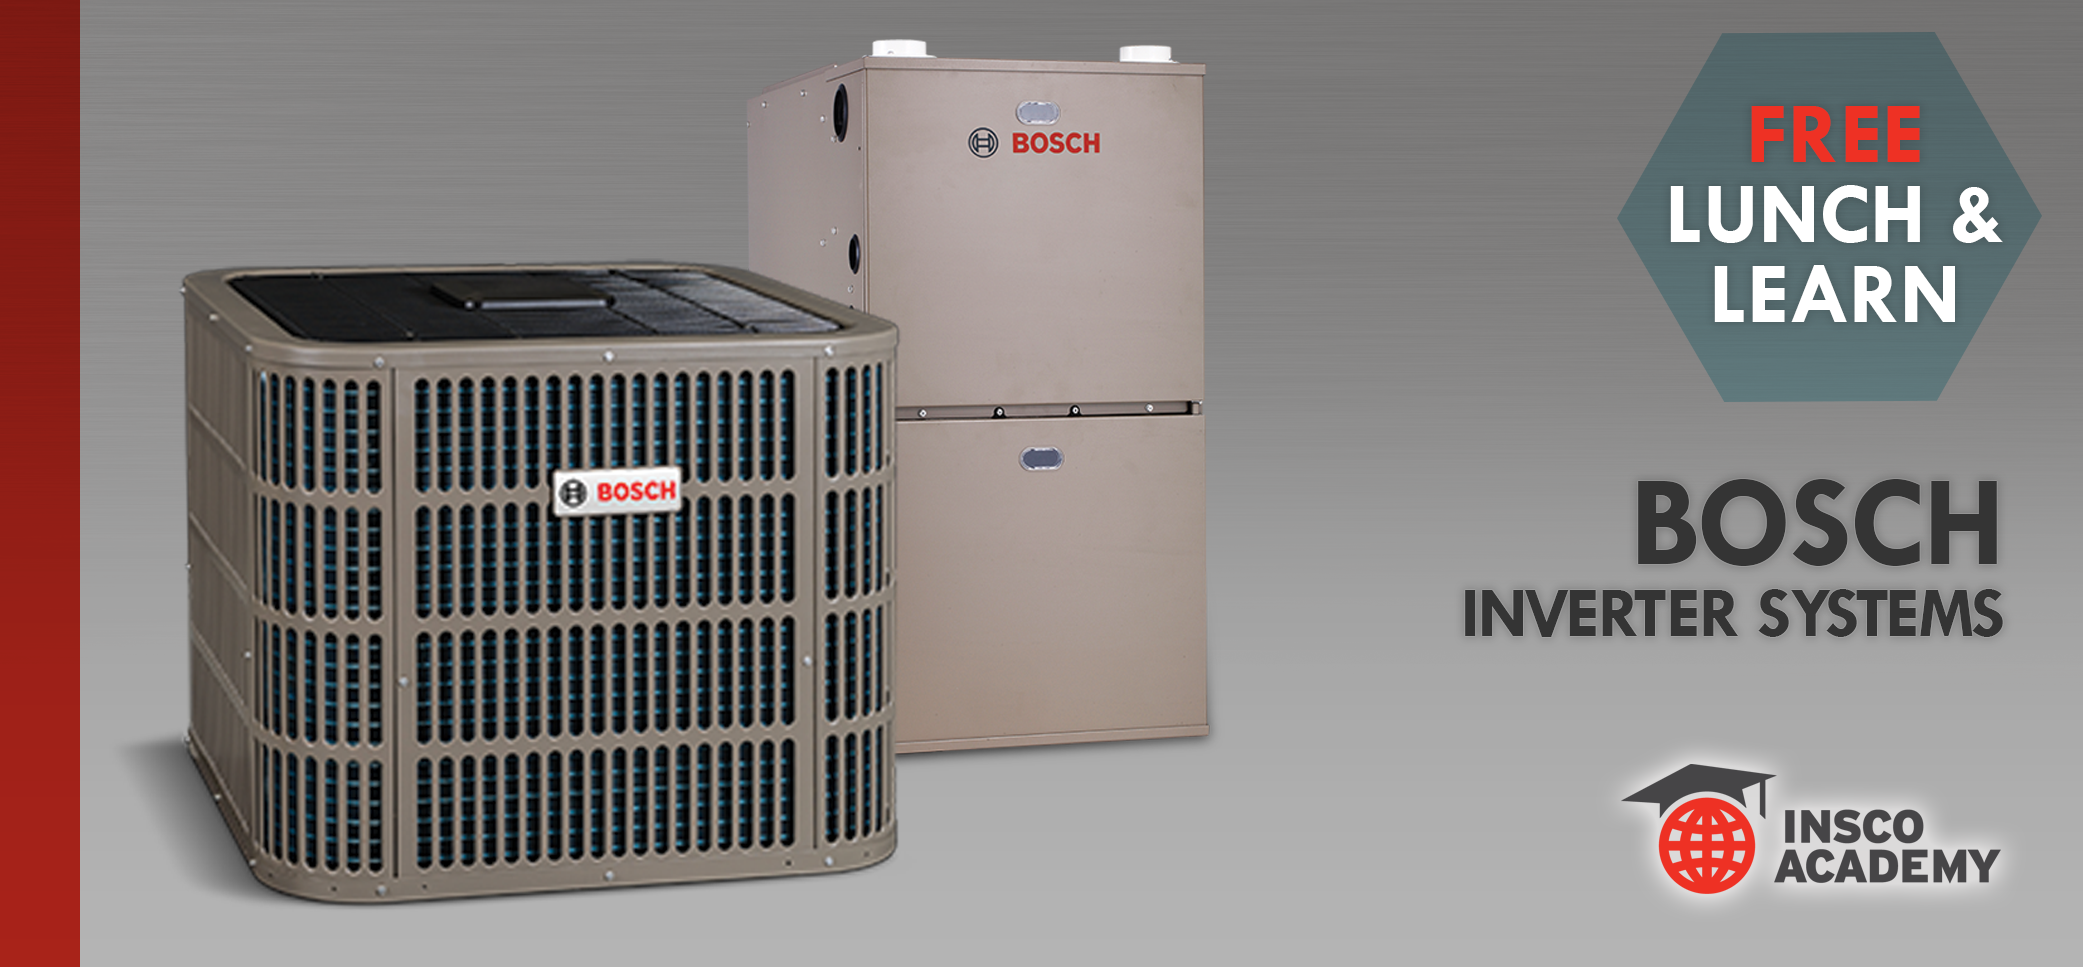 Bosch Lunch and Learn